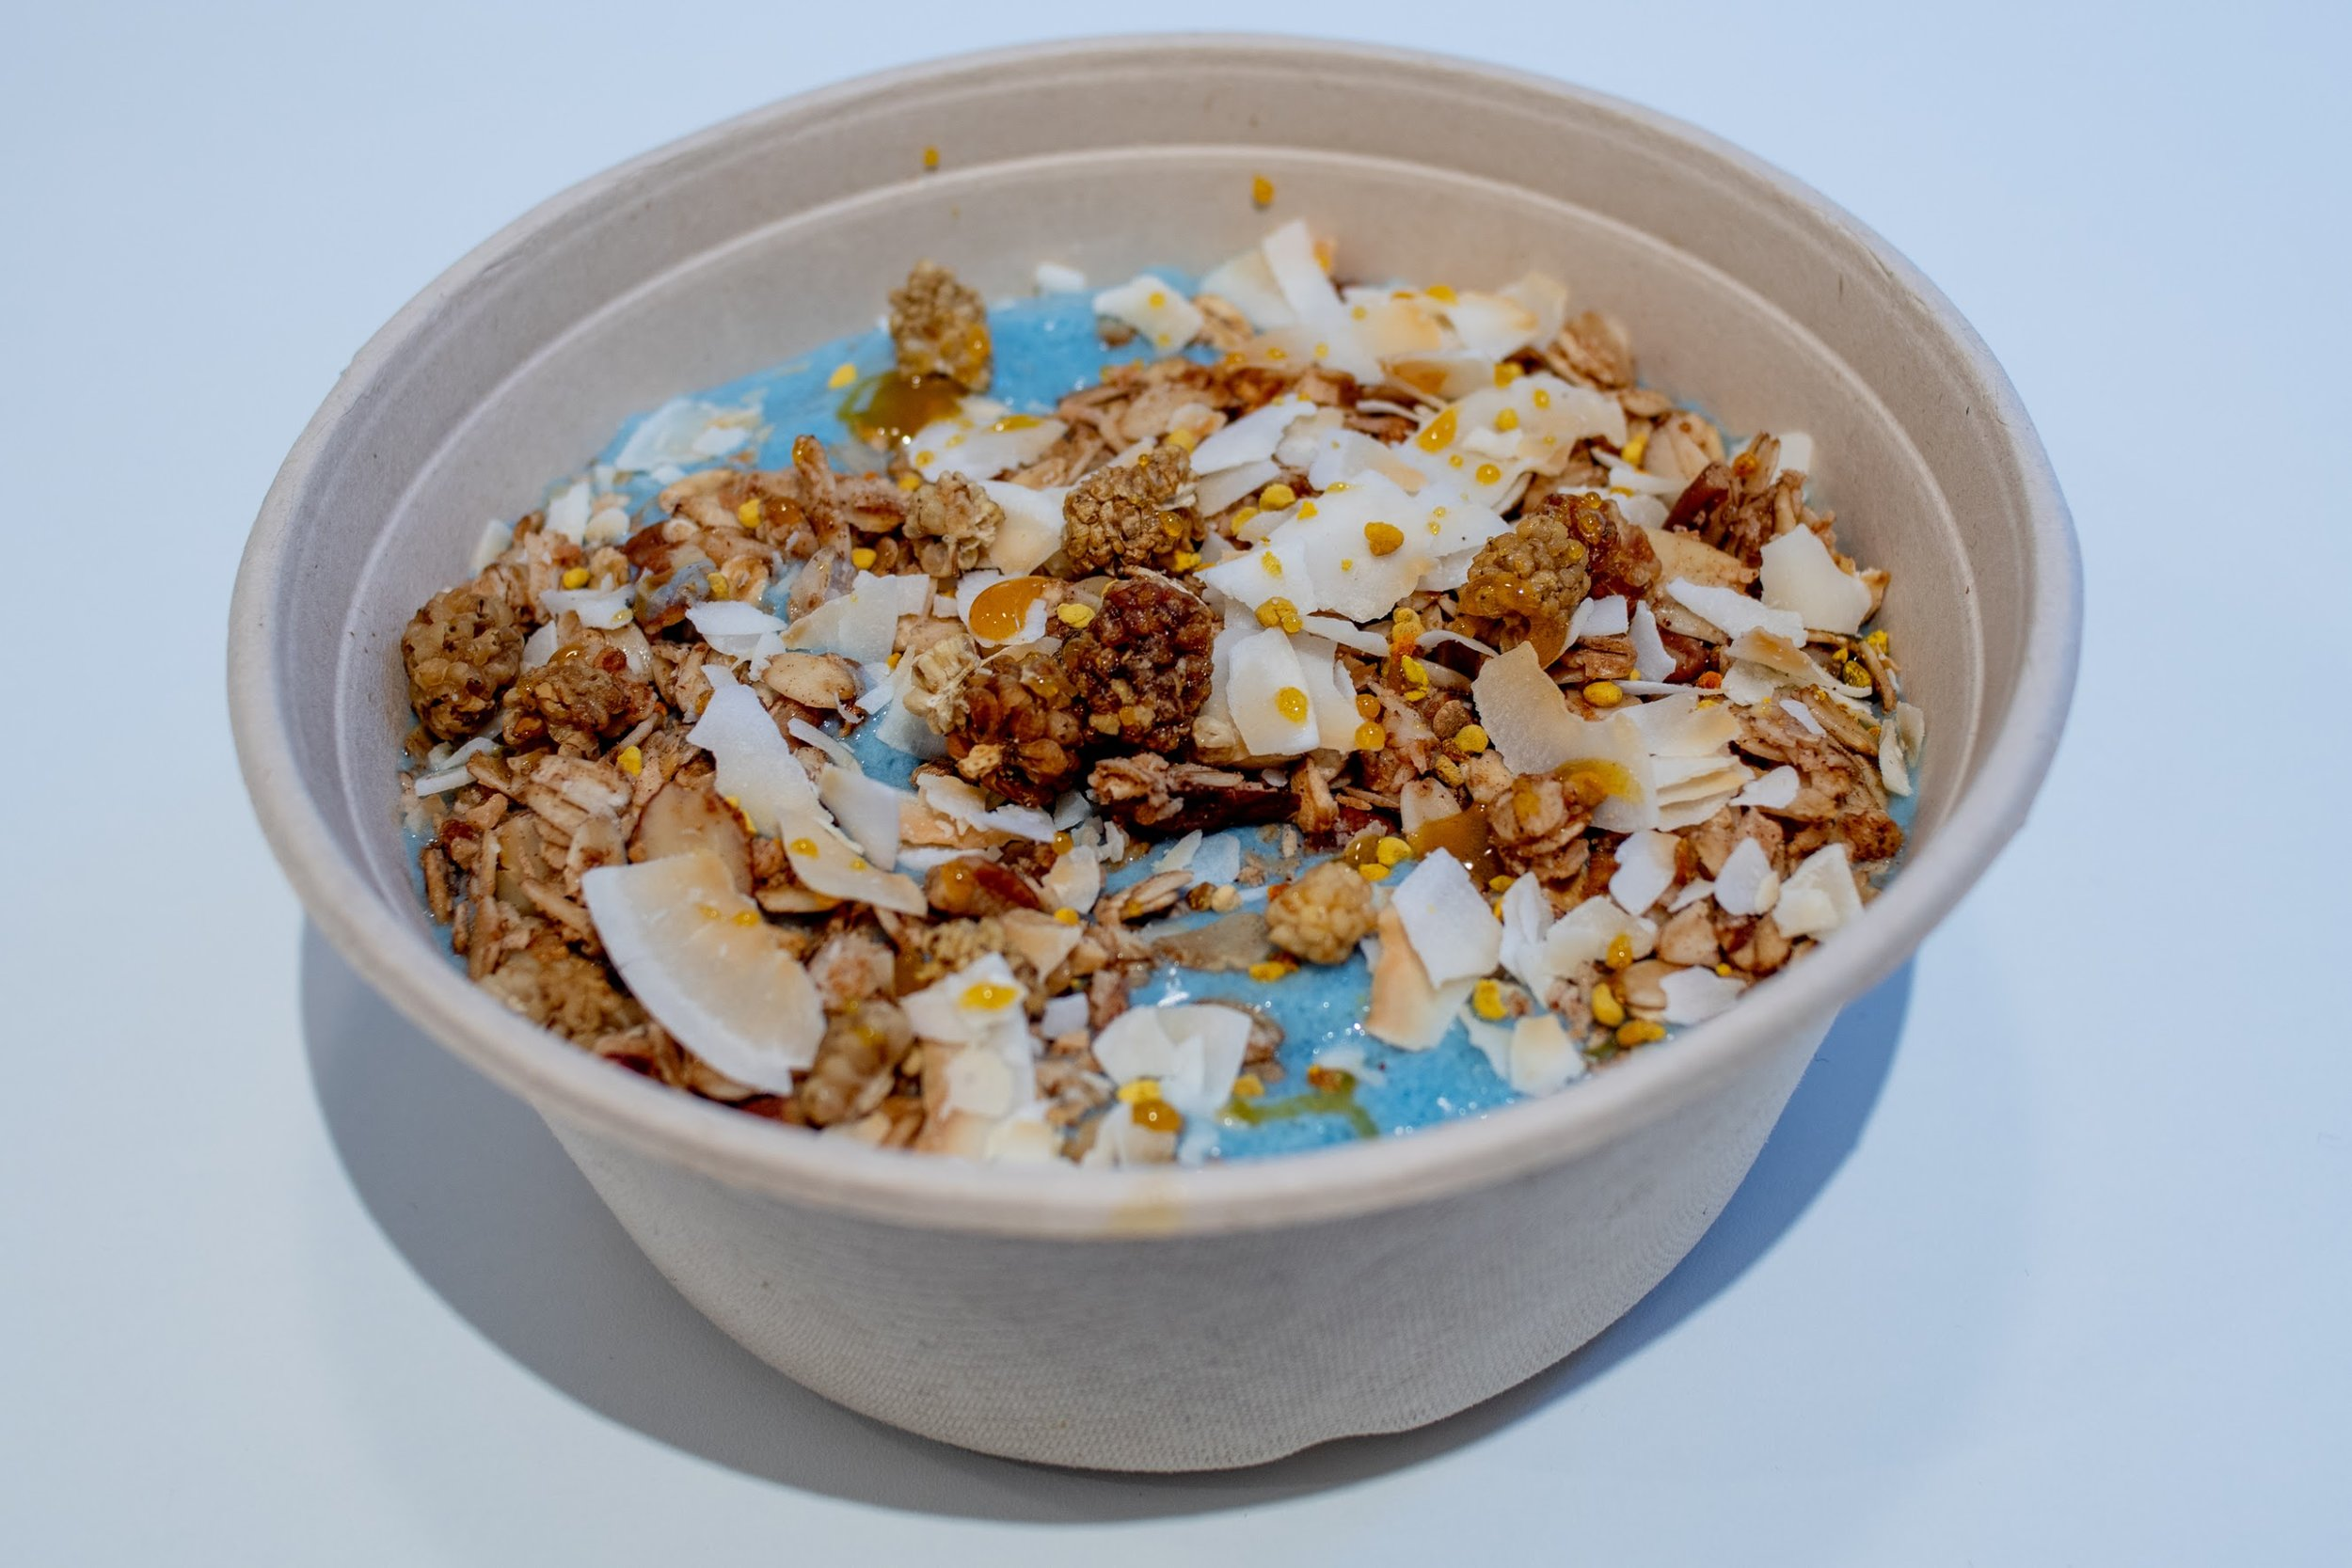 The Blues smoothie bowl.